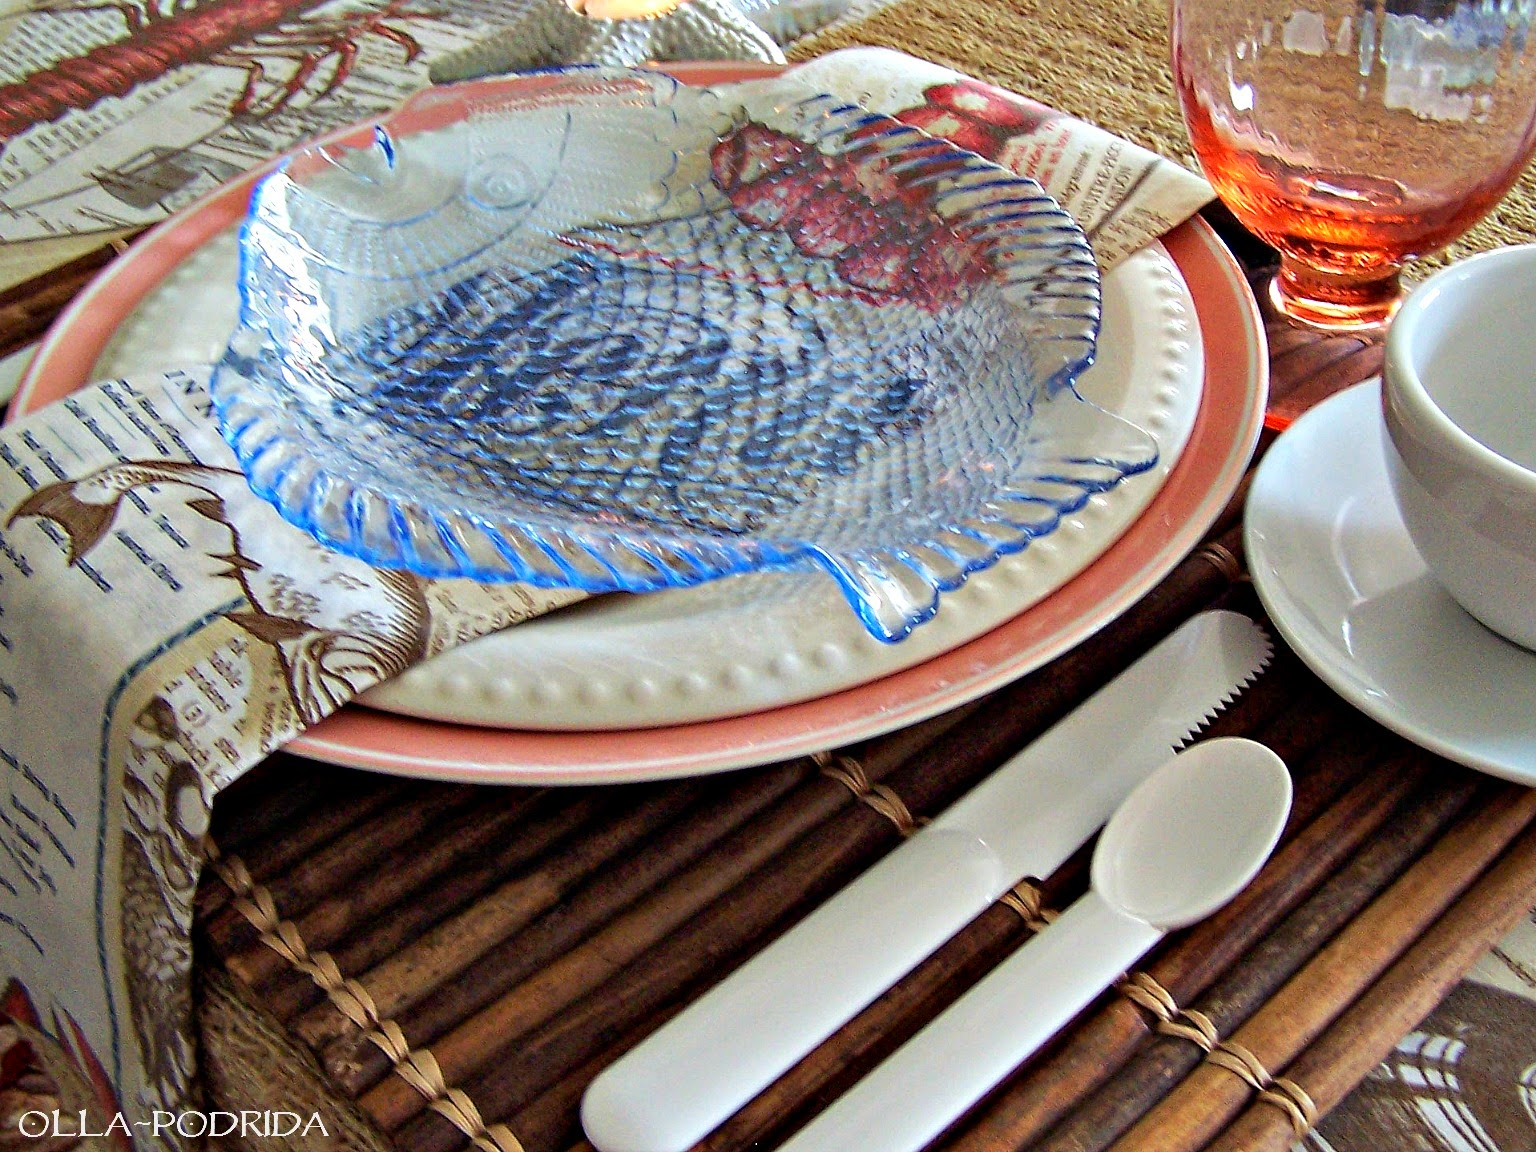 Olla Podrida Seaside Picnic Table Setting